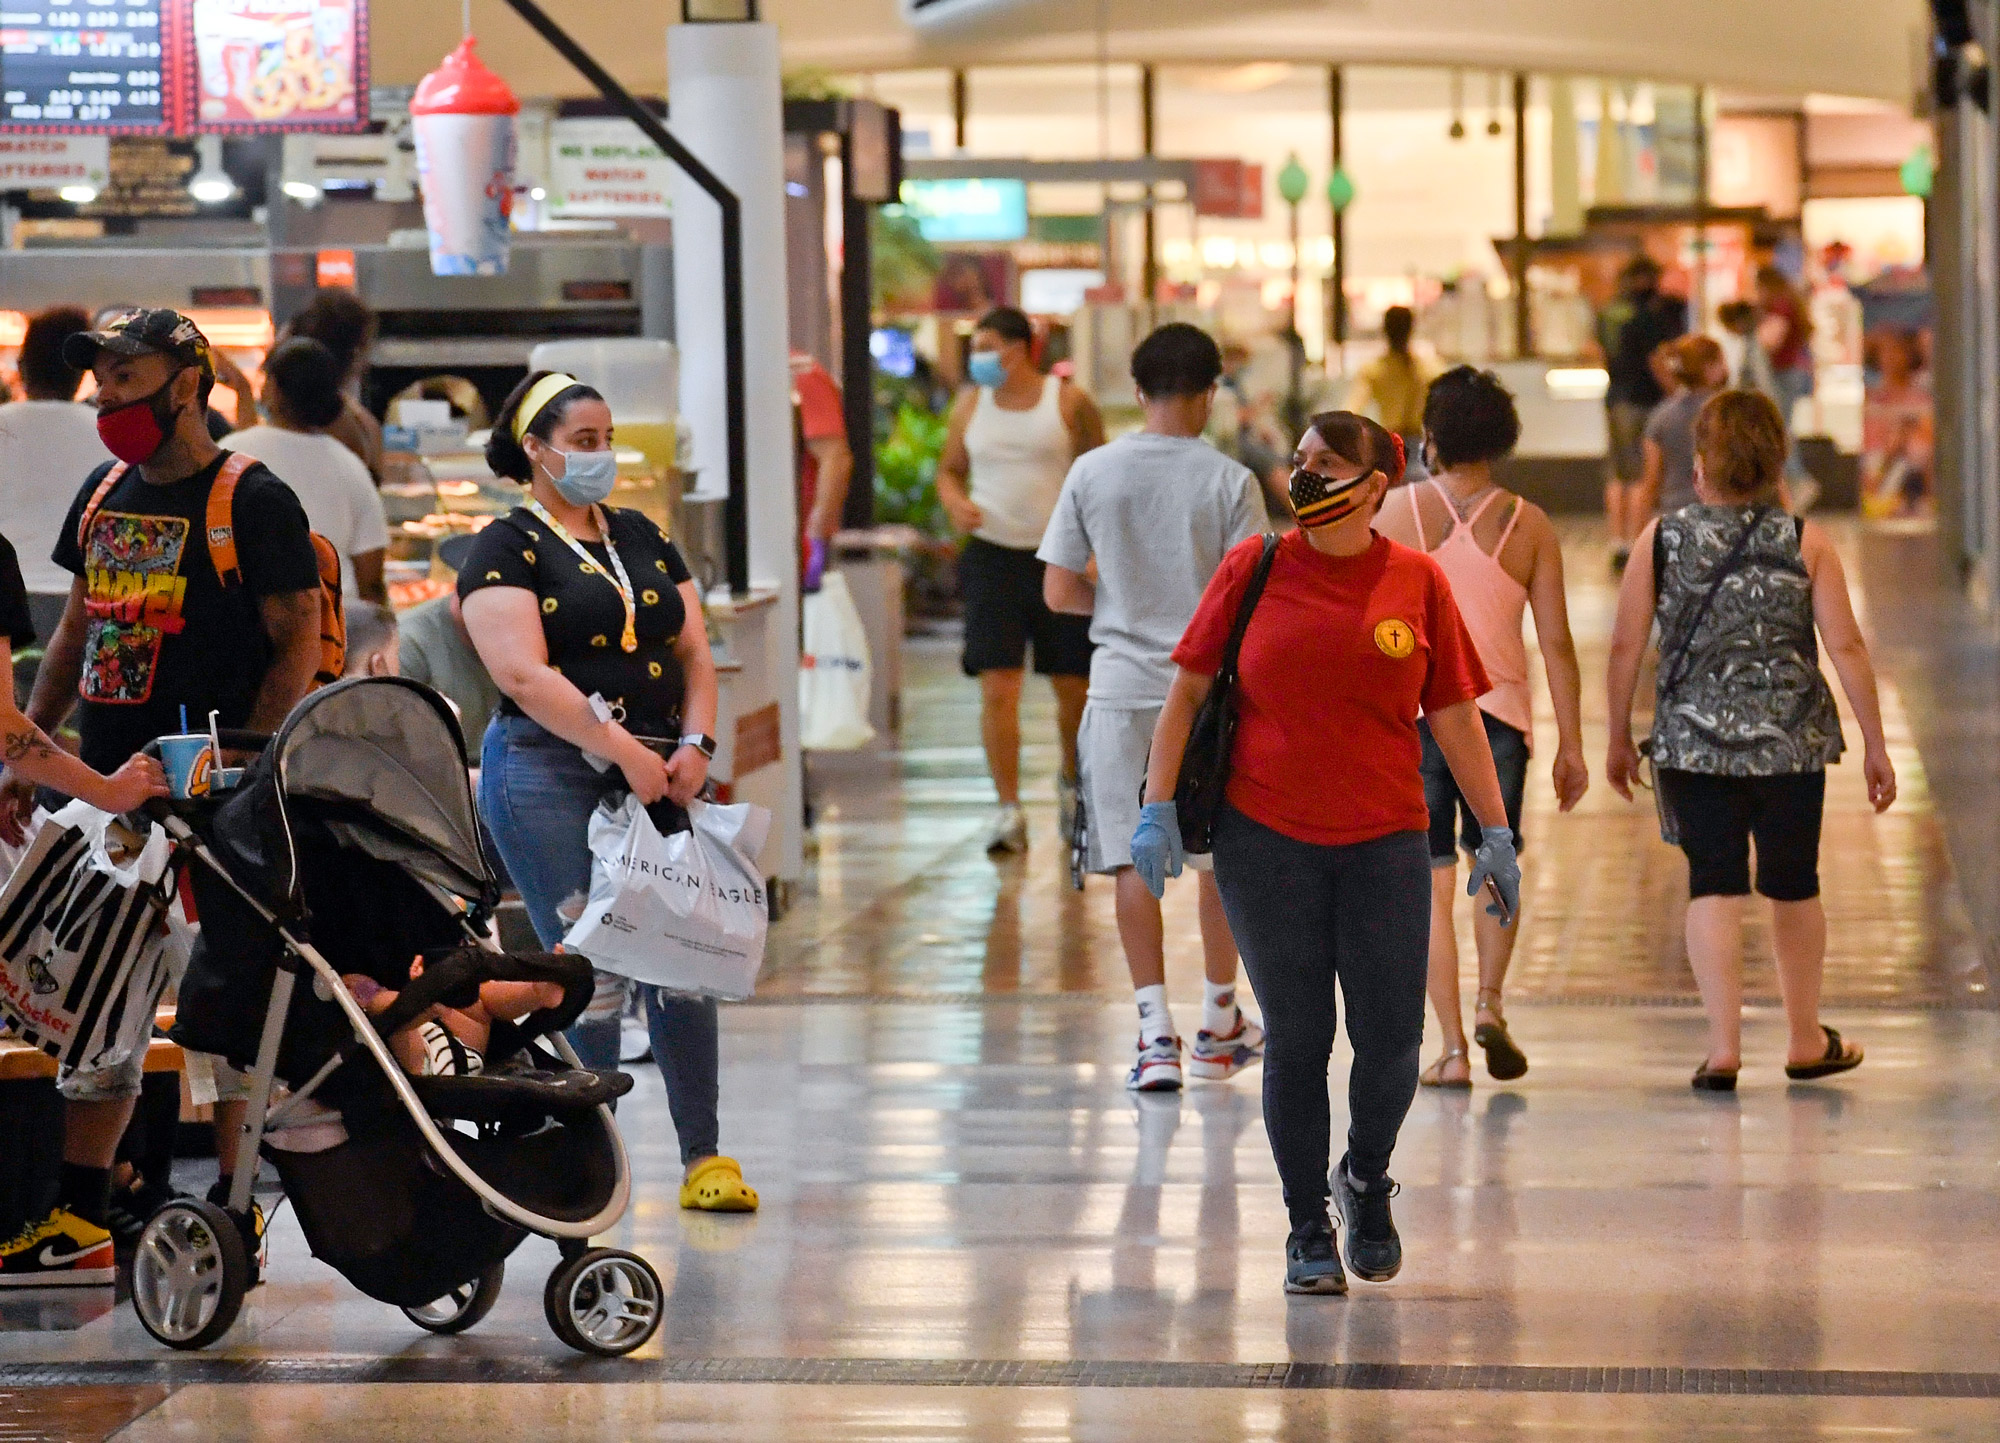 People walk through the concourse at the Berkshire Mall in Wyomissing, Pennsylvania, on June 26.